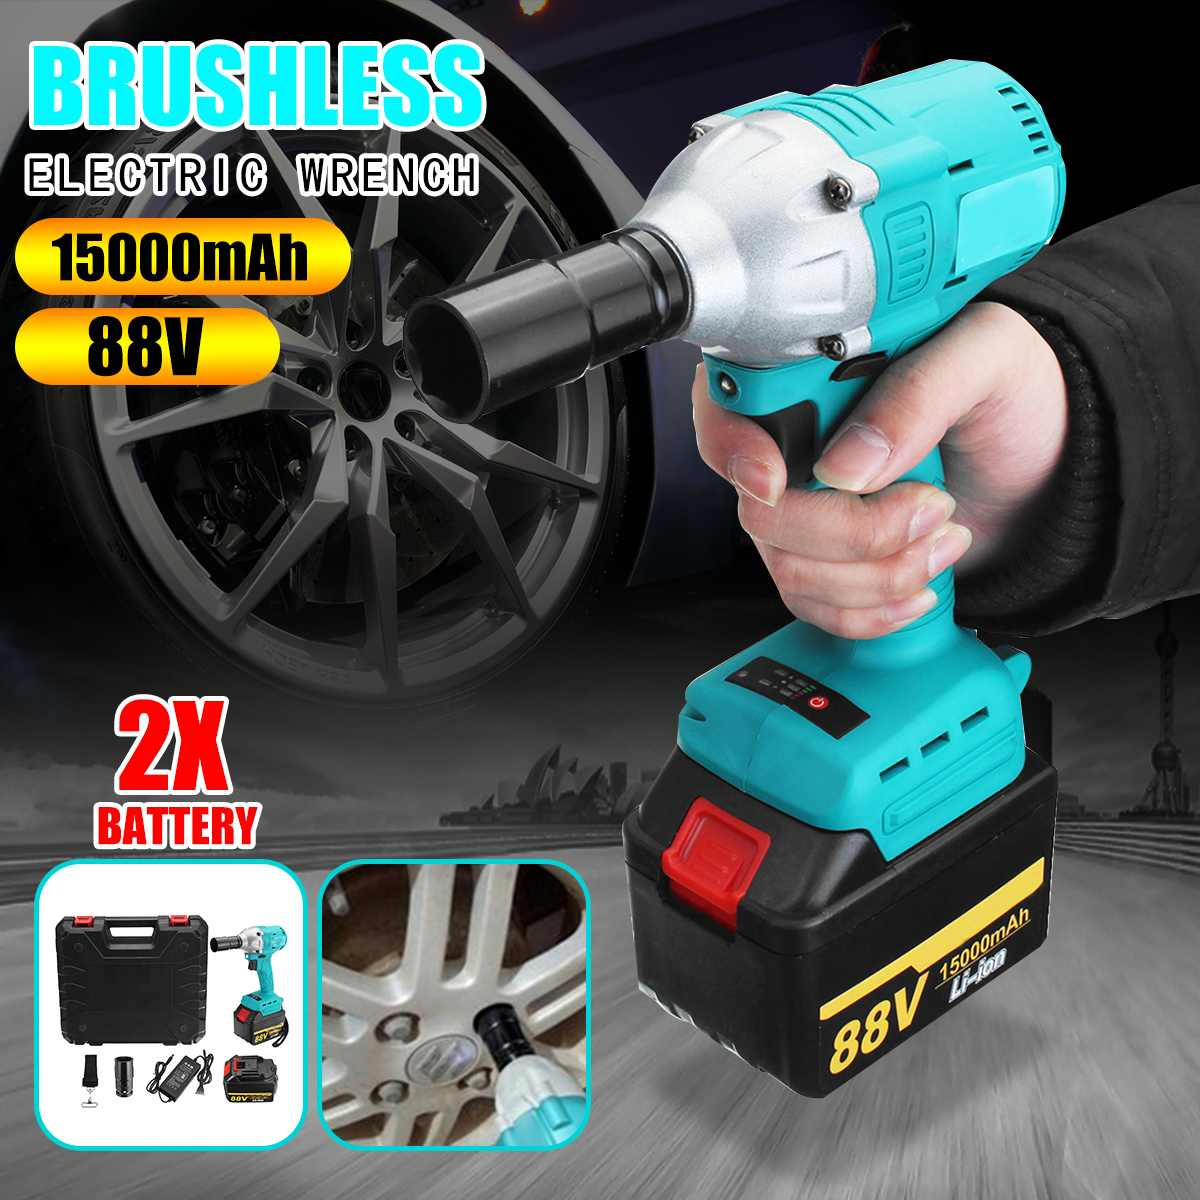 88V Portable Dual Speed Wlectric Electric Wrench Brushless Cordless Wrench 380N.M Home Hand Power Tools Lithium Battery 15000mAh88V Portable Dual Speed Wlectric Electric Wrench Brushless Cordless Wrench 380N.M Home Hand Power Tools Lithium Battery 15000mAh